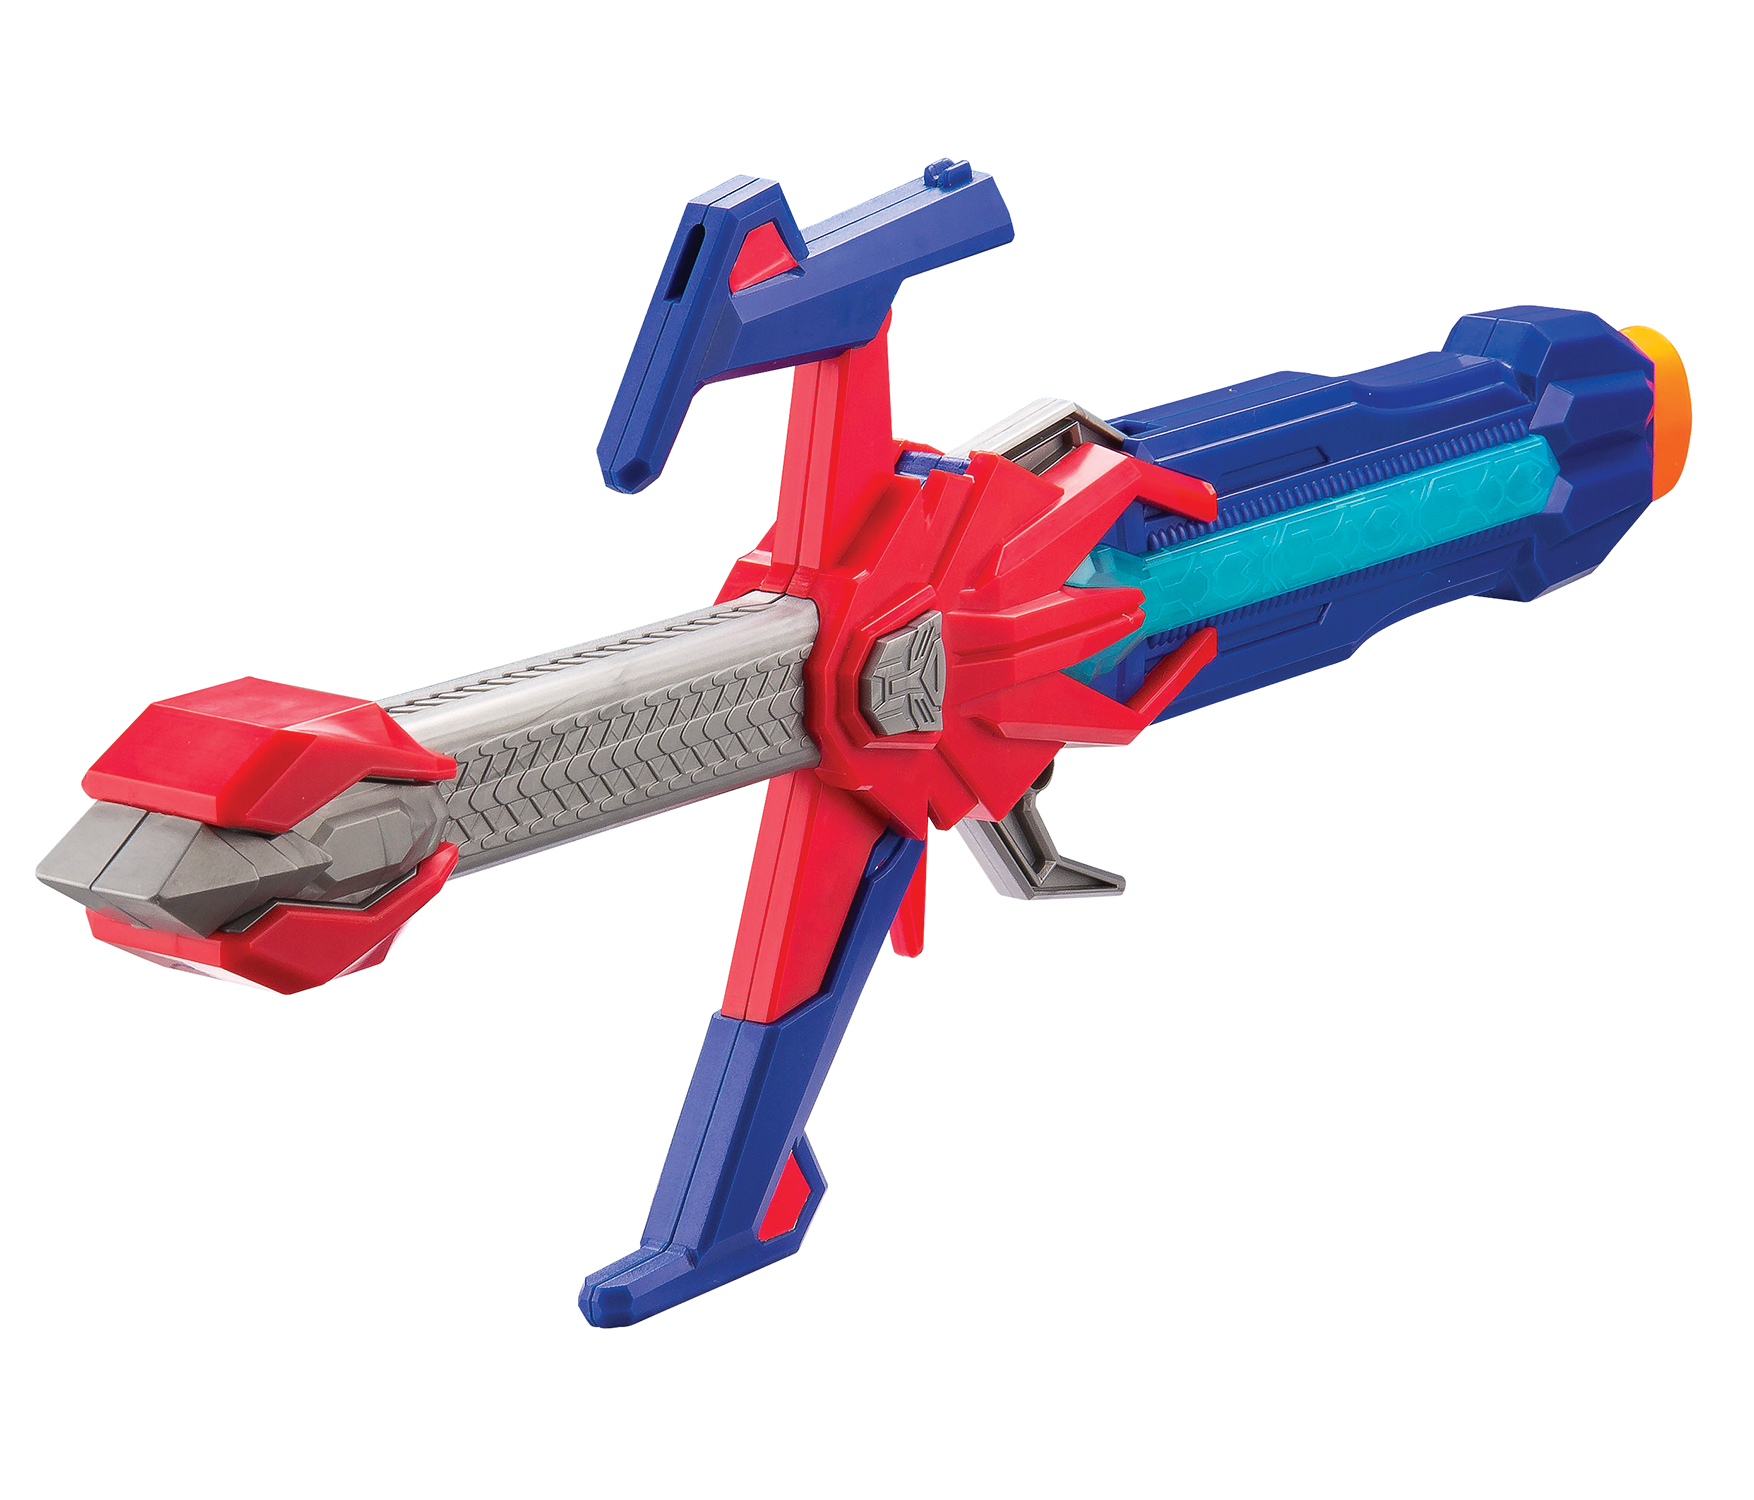 TRANSFORMERS LIGHTS & SOUNDS TRANSFORMING SWORD